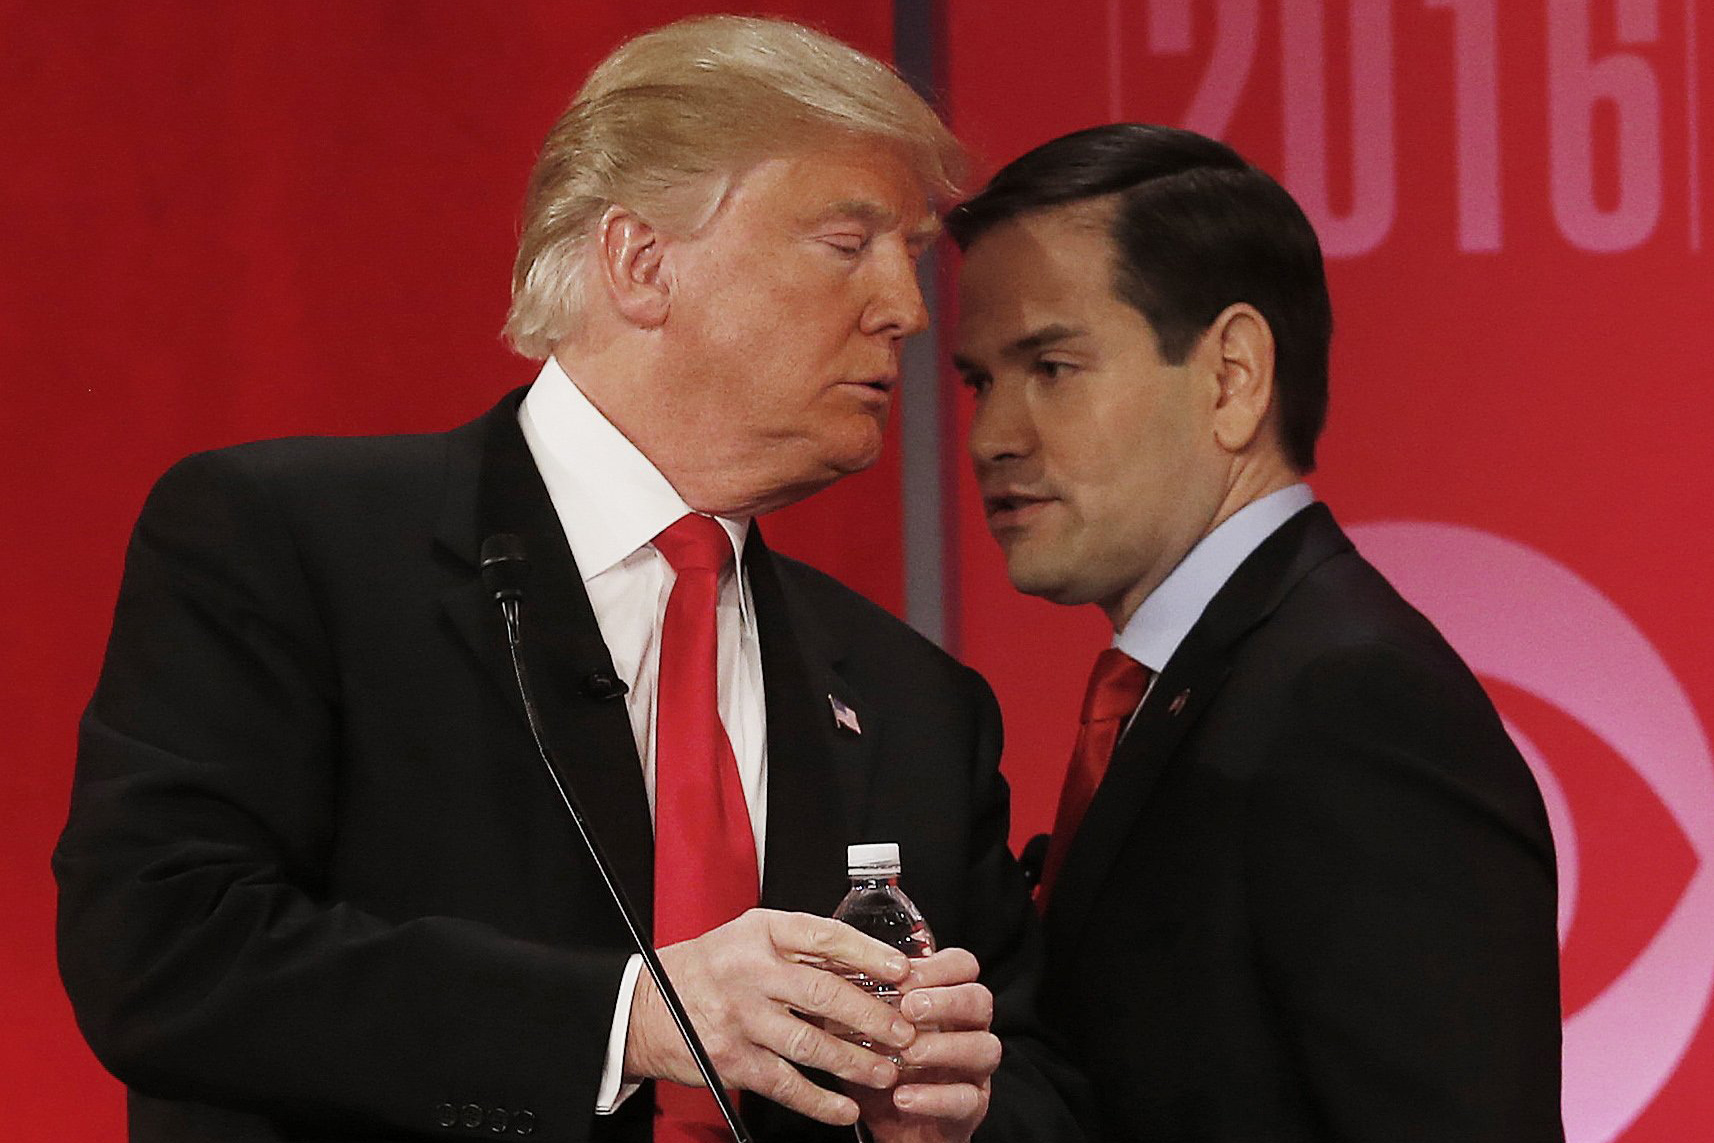 Republican presidential candidate, Sen. Marco Rubio, right, speaks to Republican presidential candidate Donald Trump during the CBS News Republican presidential debate at the Peace Center in Greenville, S.C., Feb. 13, 2016.